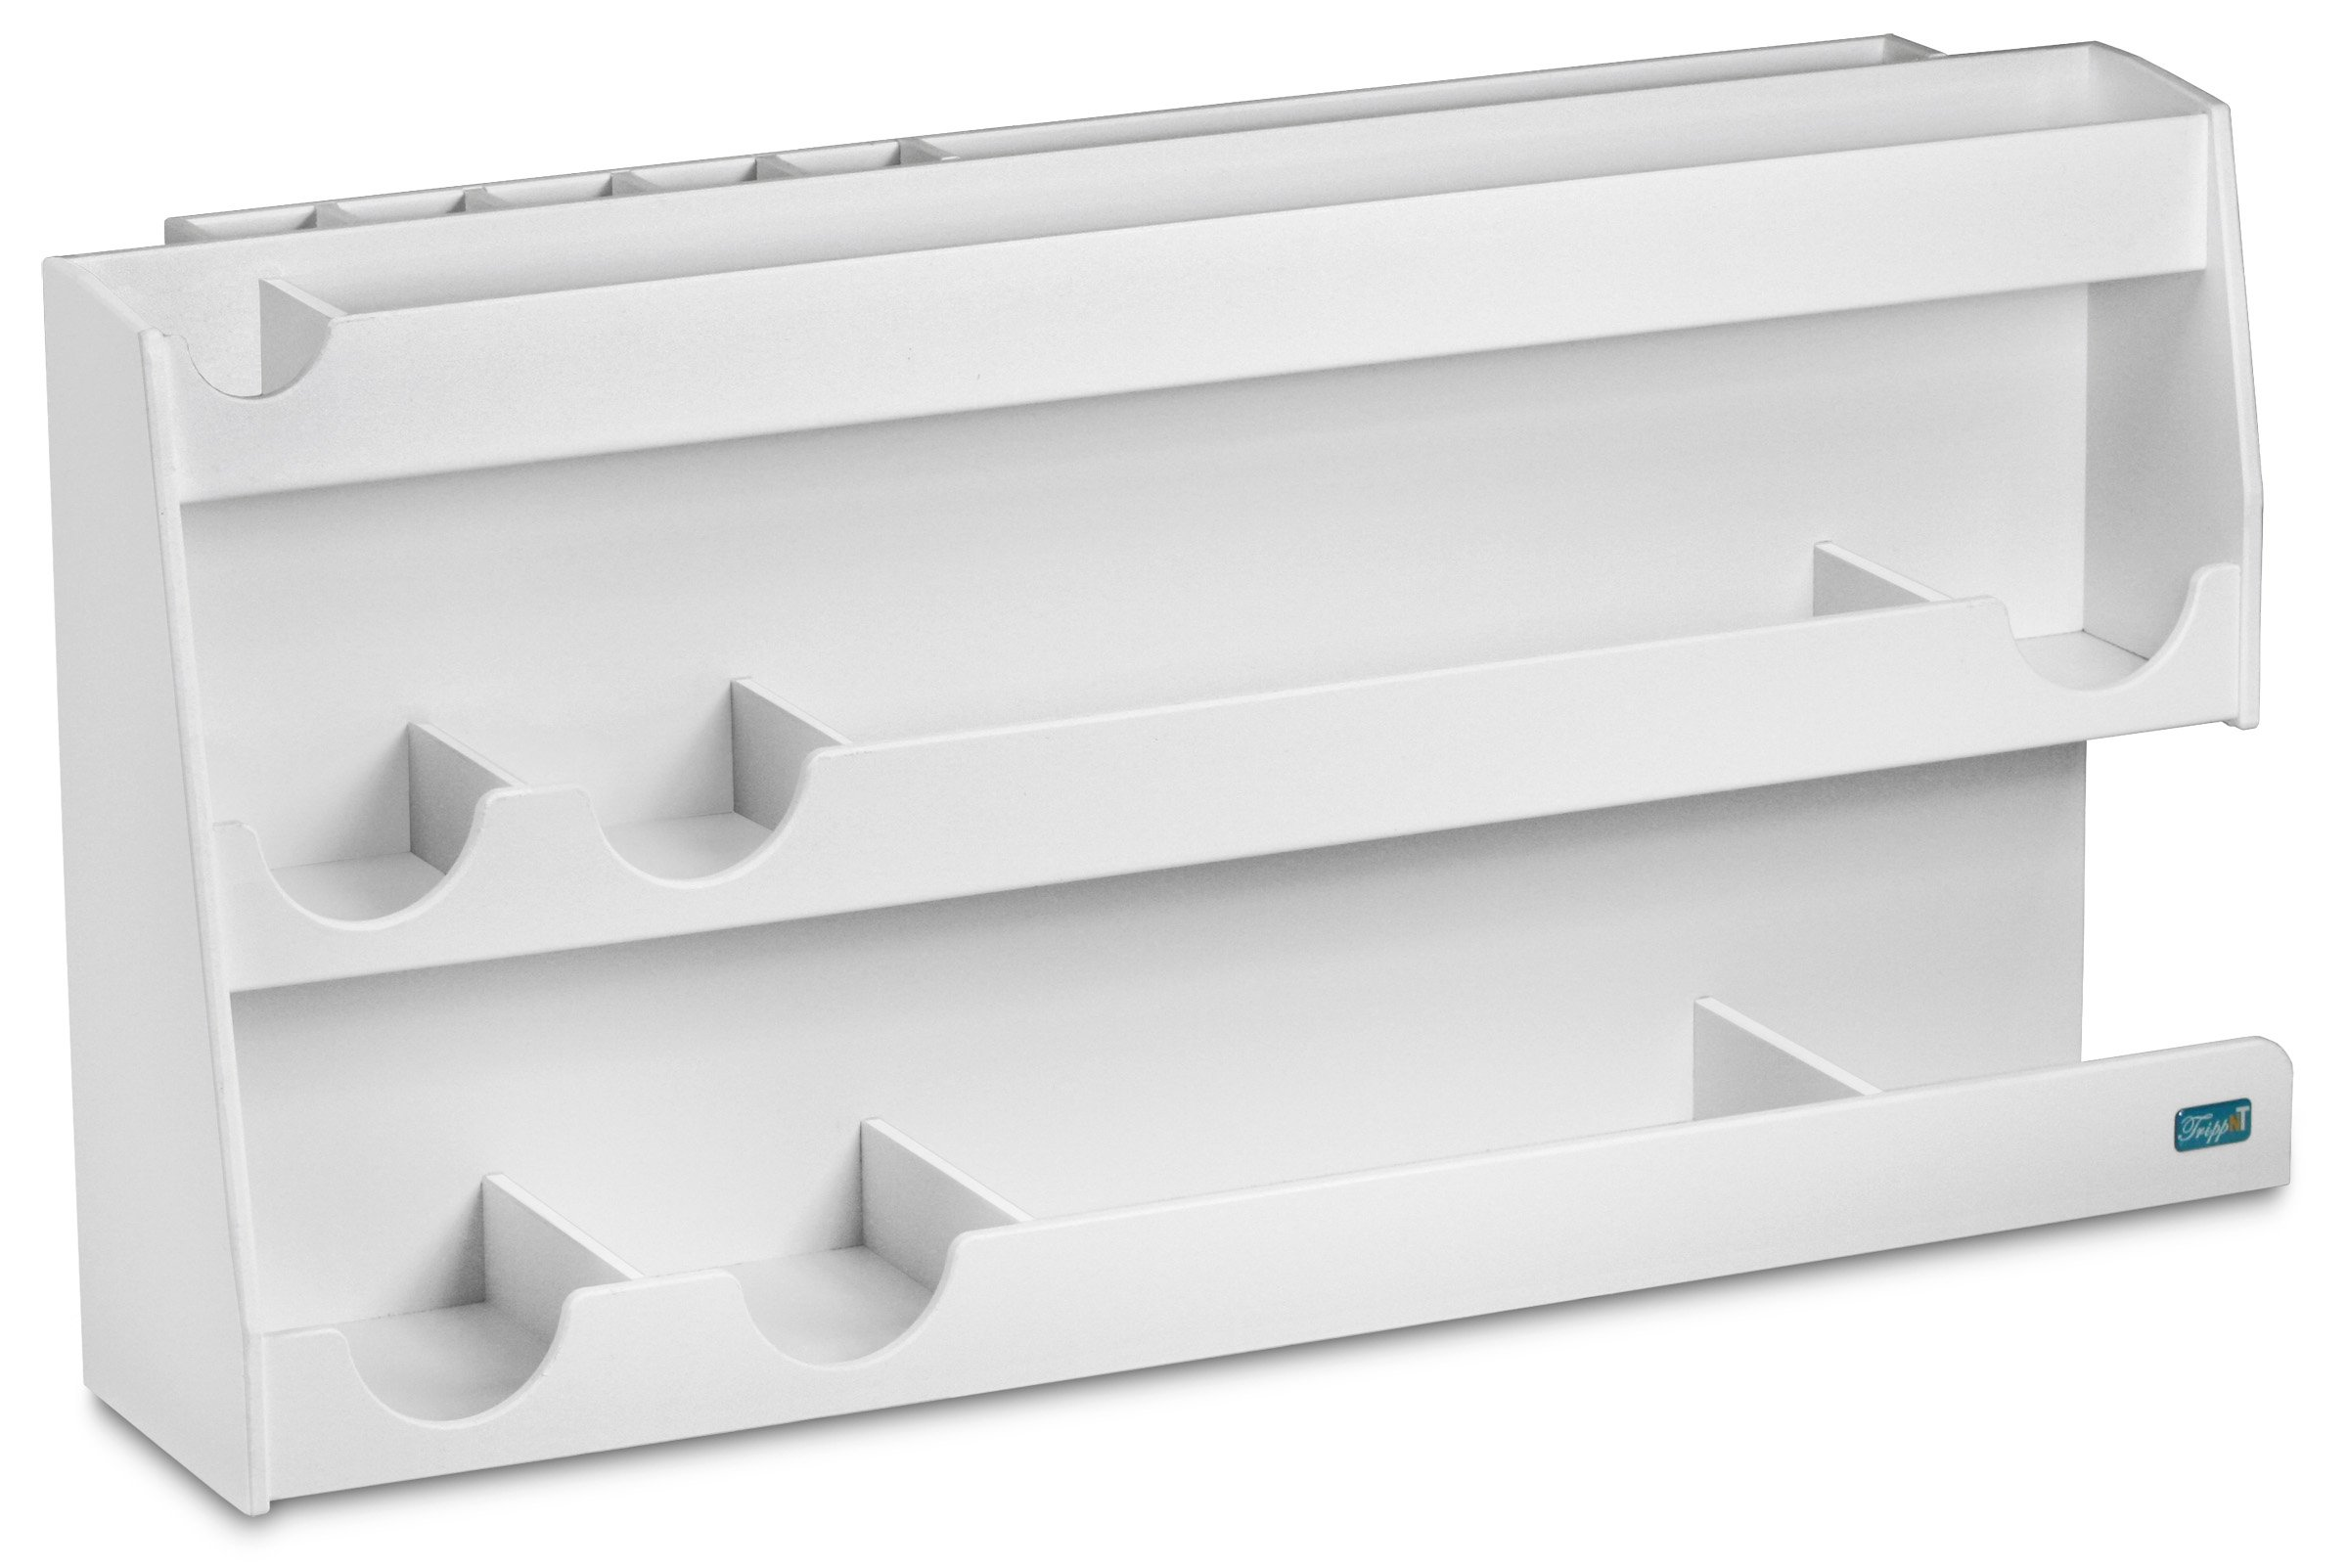 """TrippNT 50124 White PVC Plastic Bench Top Personal Workstation, 17 Compartments, Large, 24"""" Width x 12"""" Height x 7.5"""" Depth"""